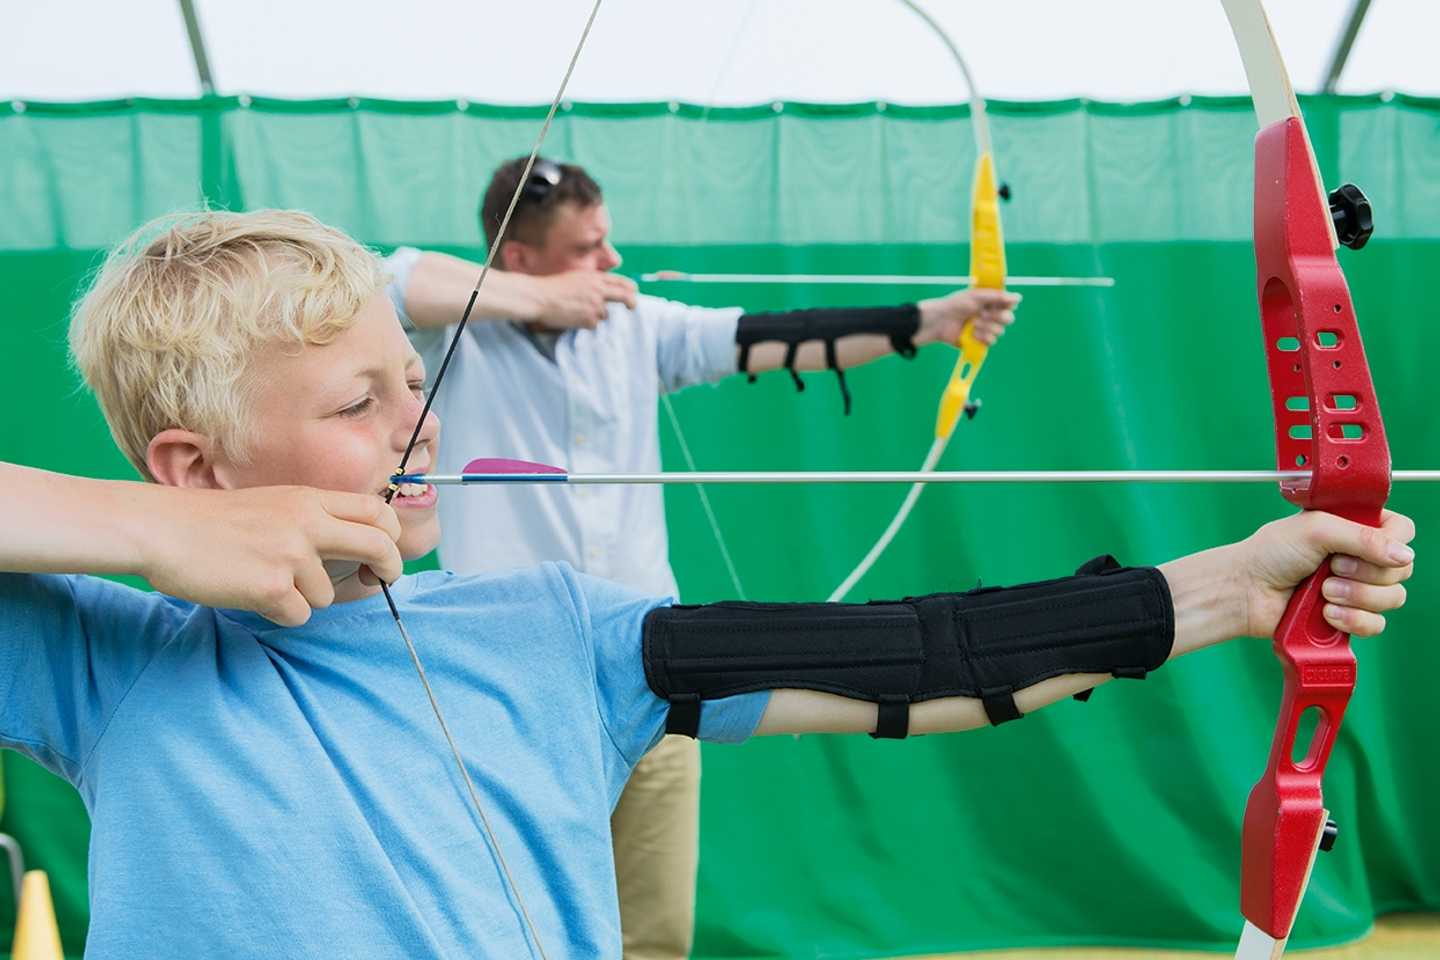 Children trying out archery